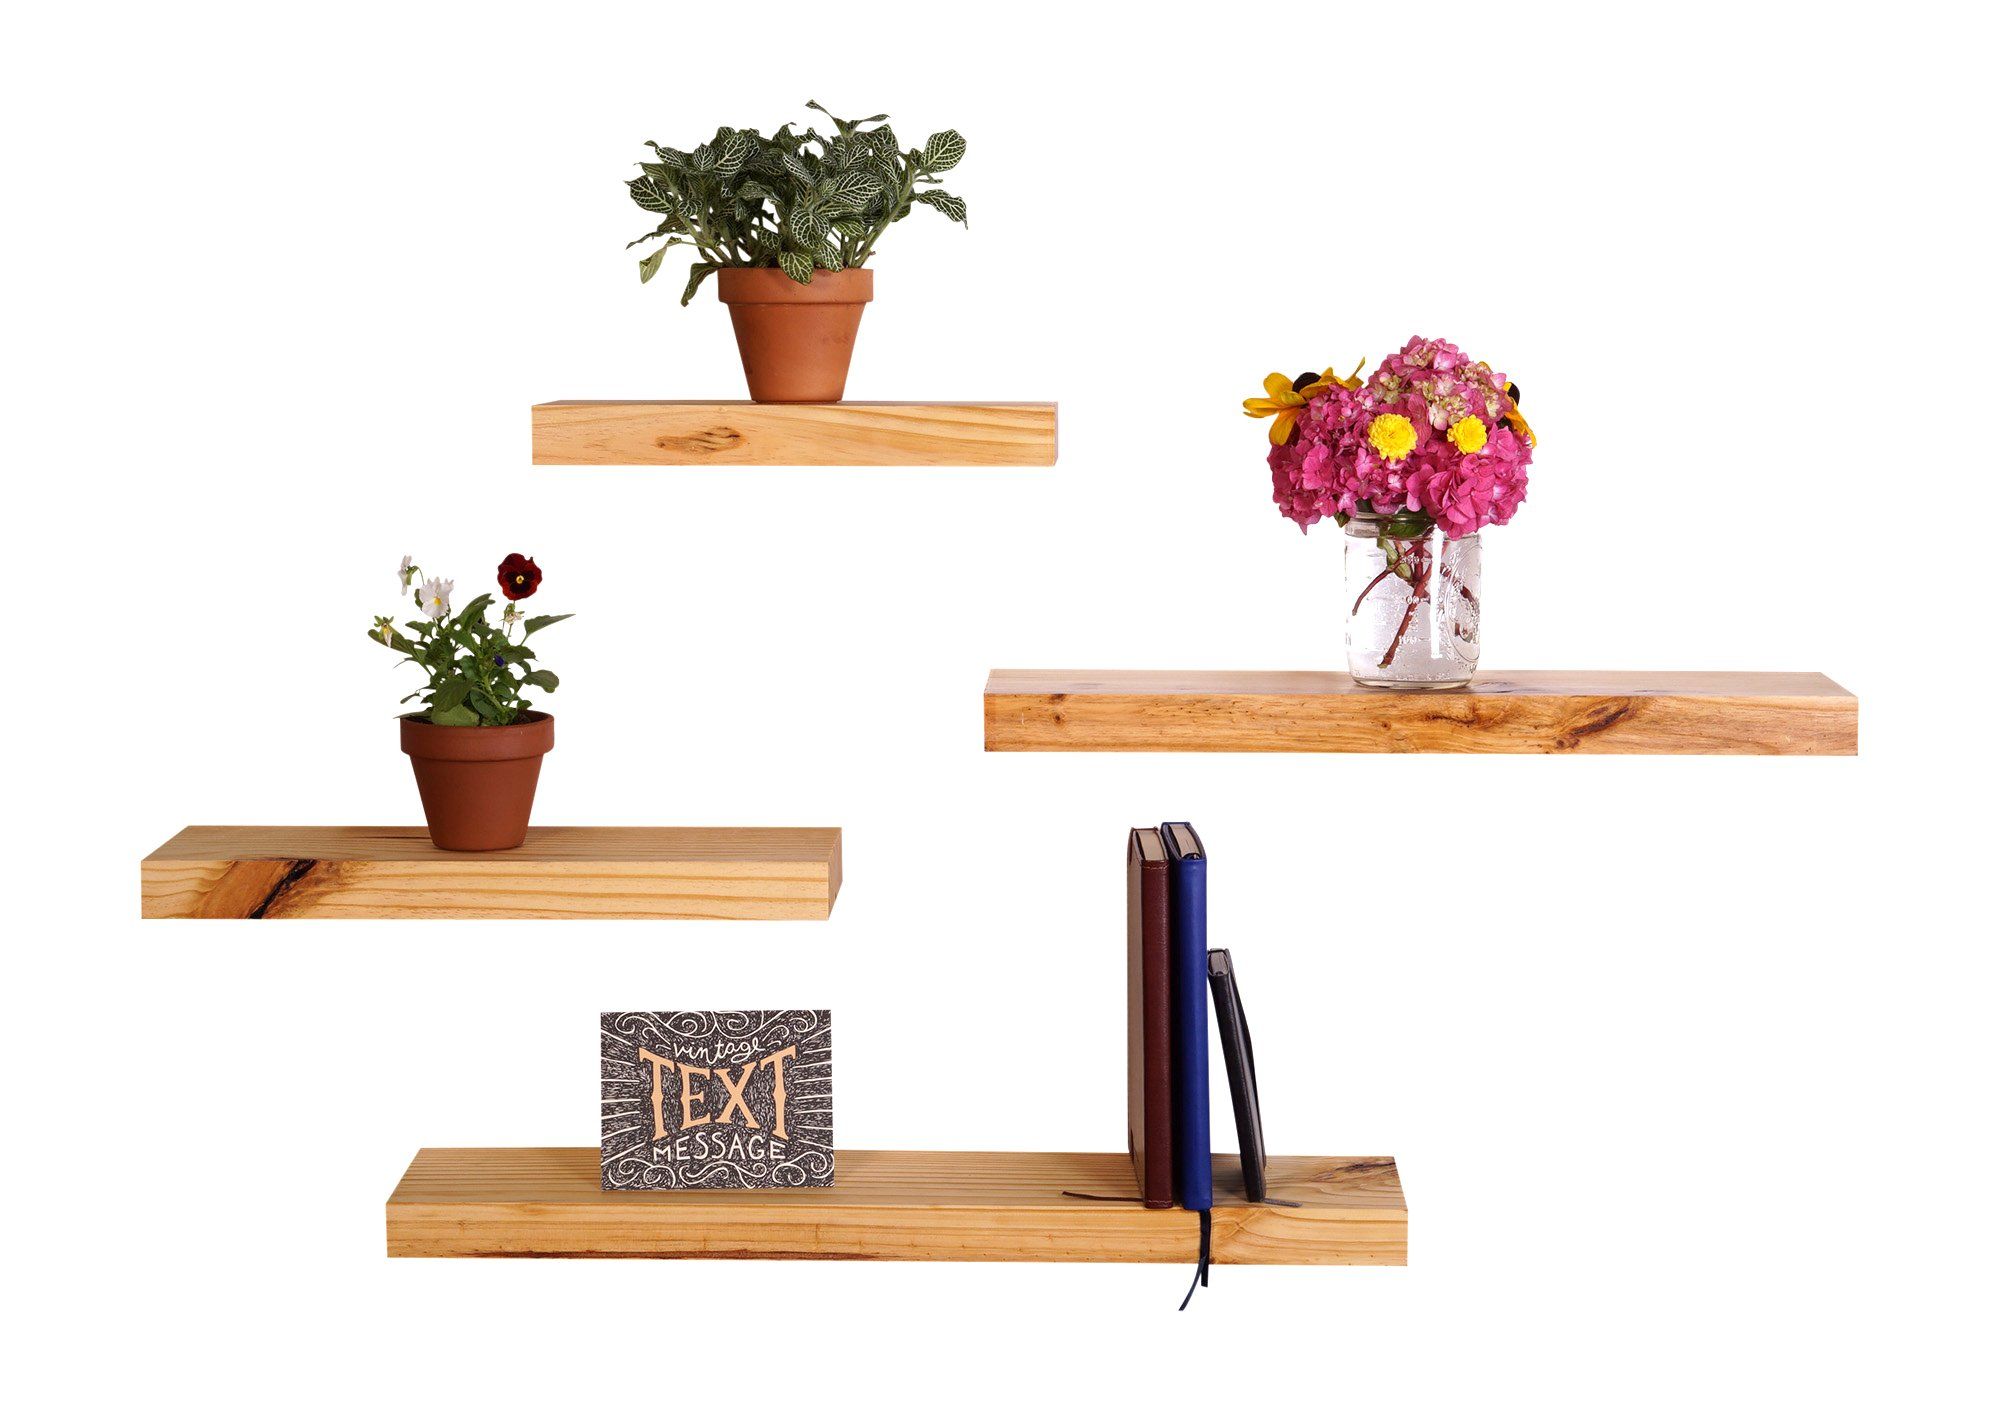 "DAKODA LOVE Clean Edge Floating Shelves | USA Handmade | Wall Mounted Hidden Single Bar Floating Shelf Bracket | Modern Rustic Pine Wood | Set of 4 (Natural, 24"", 20"", 16"", 12"" L x 5.25""D) - 🇺🇸Our Clean Edge style has classic squared corners for a simply timeless look. Rustic Scale Rating: 4 out of 10. Suitable for Kitchen, Bath, Office, Living Room, Dining Room, Bedroom, Bar, Nursery, Game Room, and Garage. These shelves measure 24"", 20"", 16"", 12"" Long x 5.25"" Deep x 1.38"" Thick and hold up to 50 pounds when securely mounted. 🇺🇸These floating shelves are mounted using a long single piece floating shelf bracket, fitted with multiple bracket rods, to make installation a breeze. They also have screw holes every 4 inches to ensure many stud mount options. All necessary floating brackets and hardware are included. 🇺🇸When you purchase shelves from us you receive more value than just a product, going forward we will see you as part of the DAKODA LOVE family. We earnestly want to create shelves you will fall in love with, and if for any reason we missed the mark, please don't hesitate to reach out to and let us fix it. We define ""Satisfaction Guarantee"" as jumping through whatever hoops are necessary to ensure a relaxed, pleasant, and secure experience with us. Period. info@dakodalove.com - wall-shelves, living-room-furniture, living-room - 71i2I%2BrWWOL -"